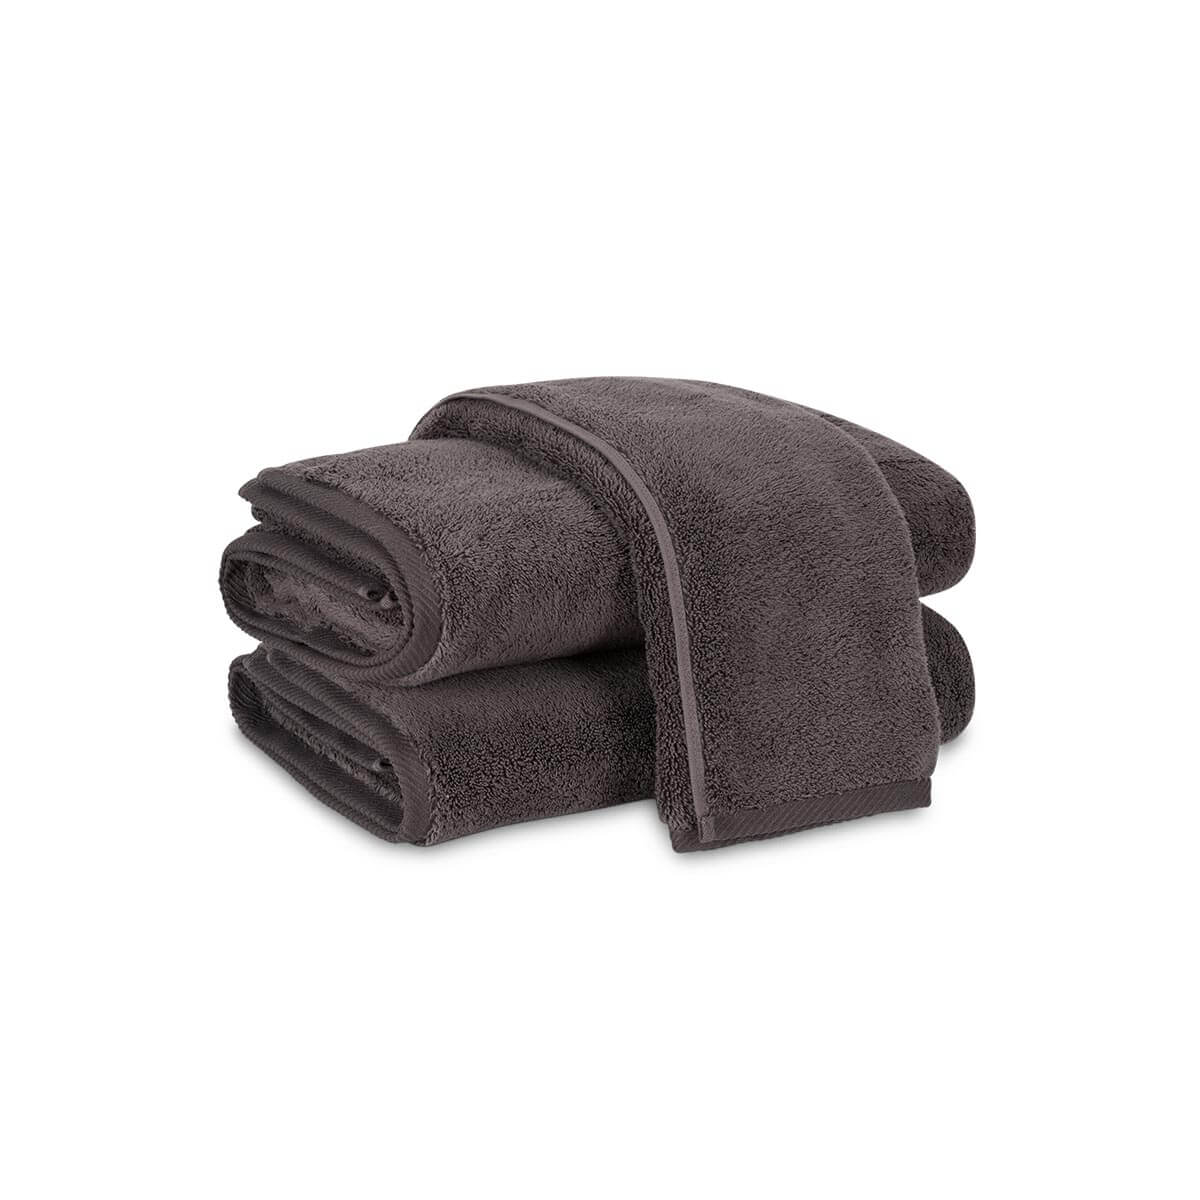 Matouk Milagro Bath Towels